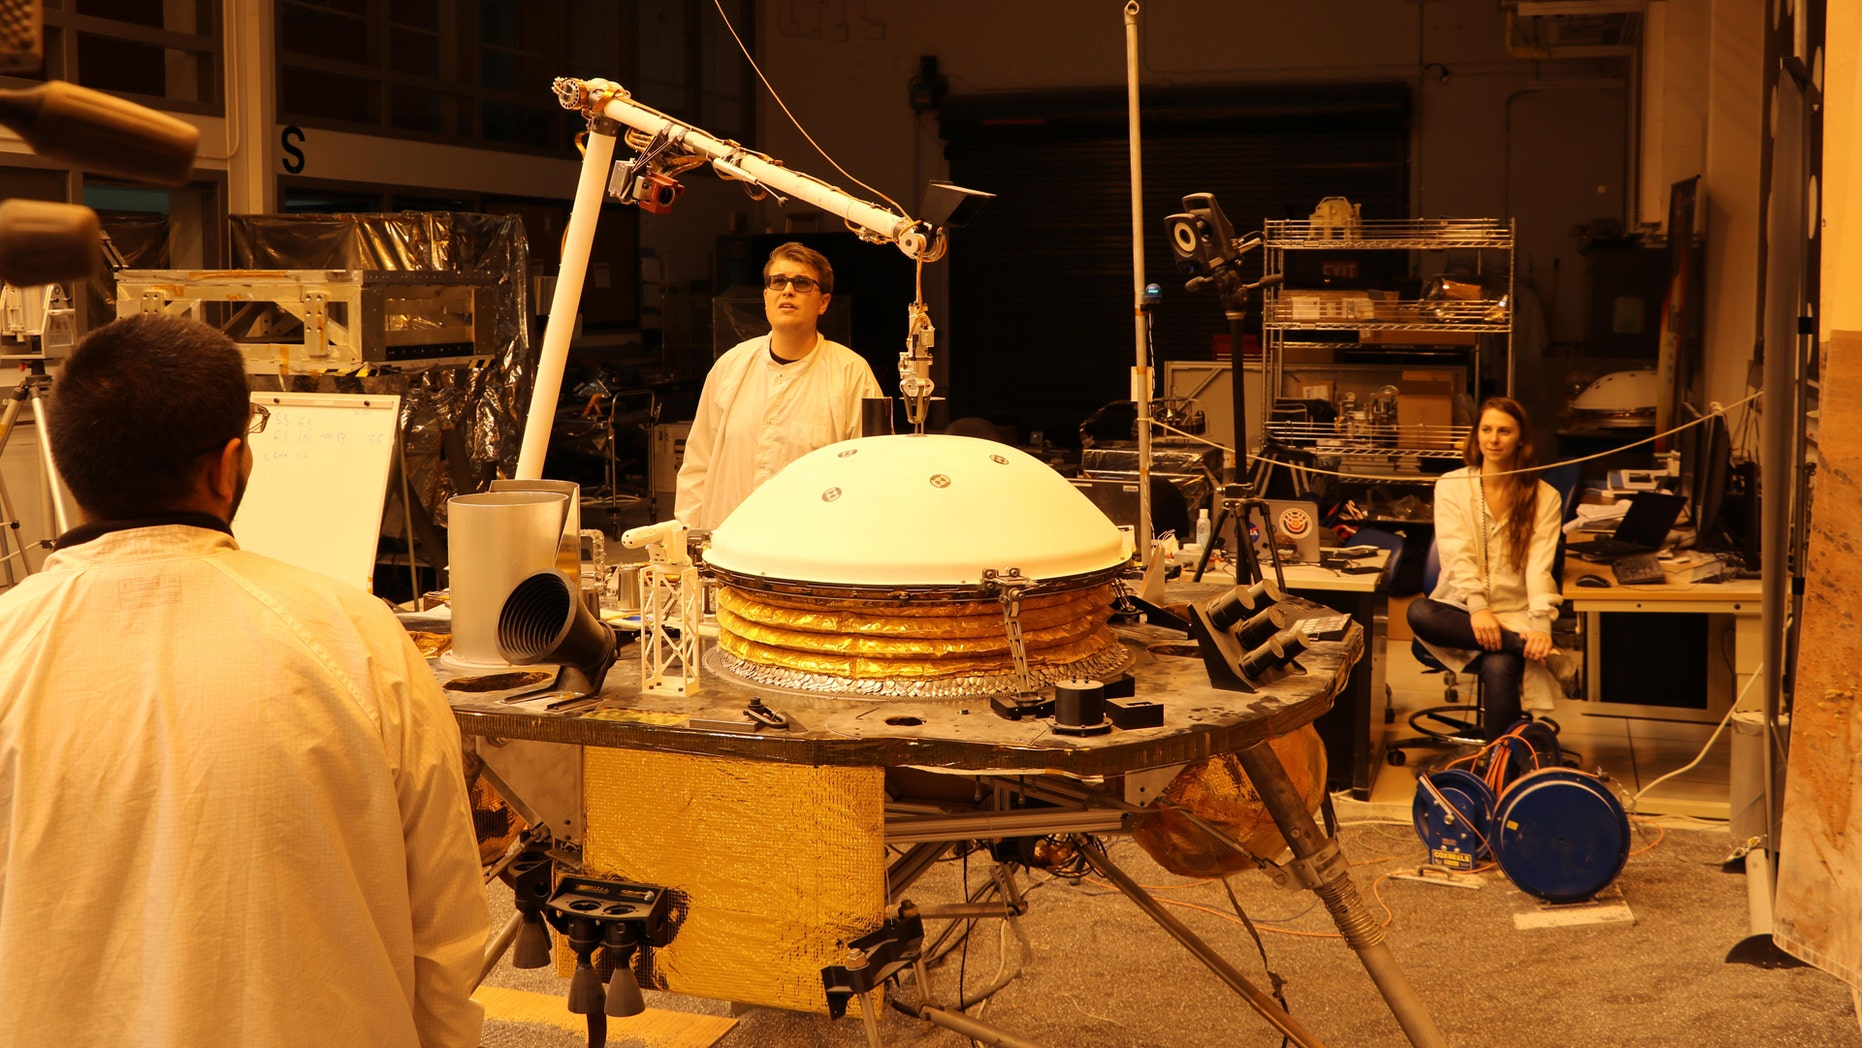 """NASA's InSight mission tests an engineering version of the spacecraft's robotic arm in a Mars-like environment at NASA's Jet Propulsion Laboratory. The five-fingered grapple on the end of the robotic arm is lifting up the Wind and Thermal Shield, a protective covering for InSight's seismometer. The test is being conducted under reddish """"Mars lighting"""" to simulate activities on the Red Planet. (Credit: NASA/JPL-Caltech)"""